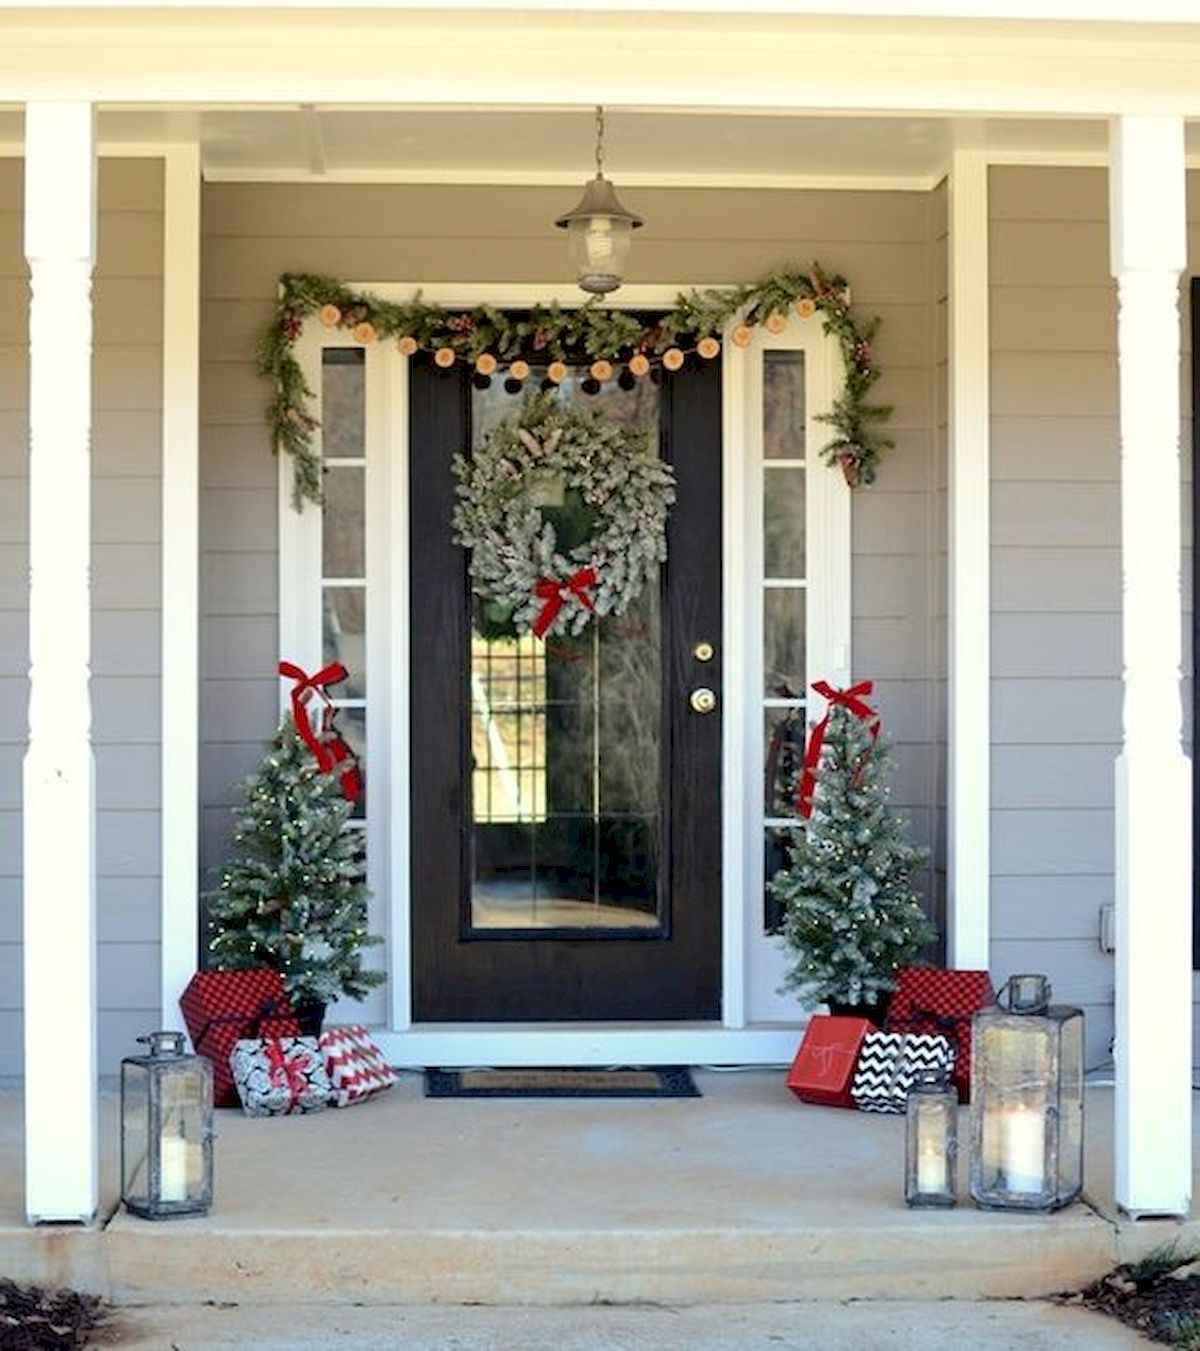 50 stunning front porch christmas lights decorations ideas (6)